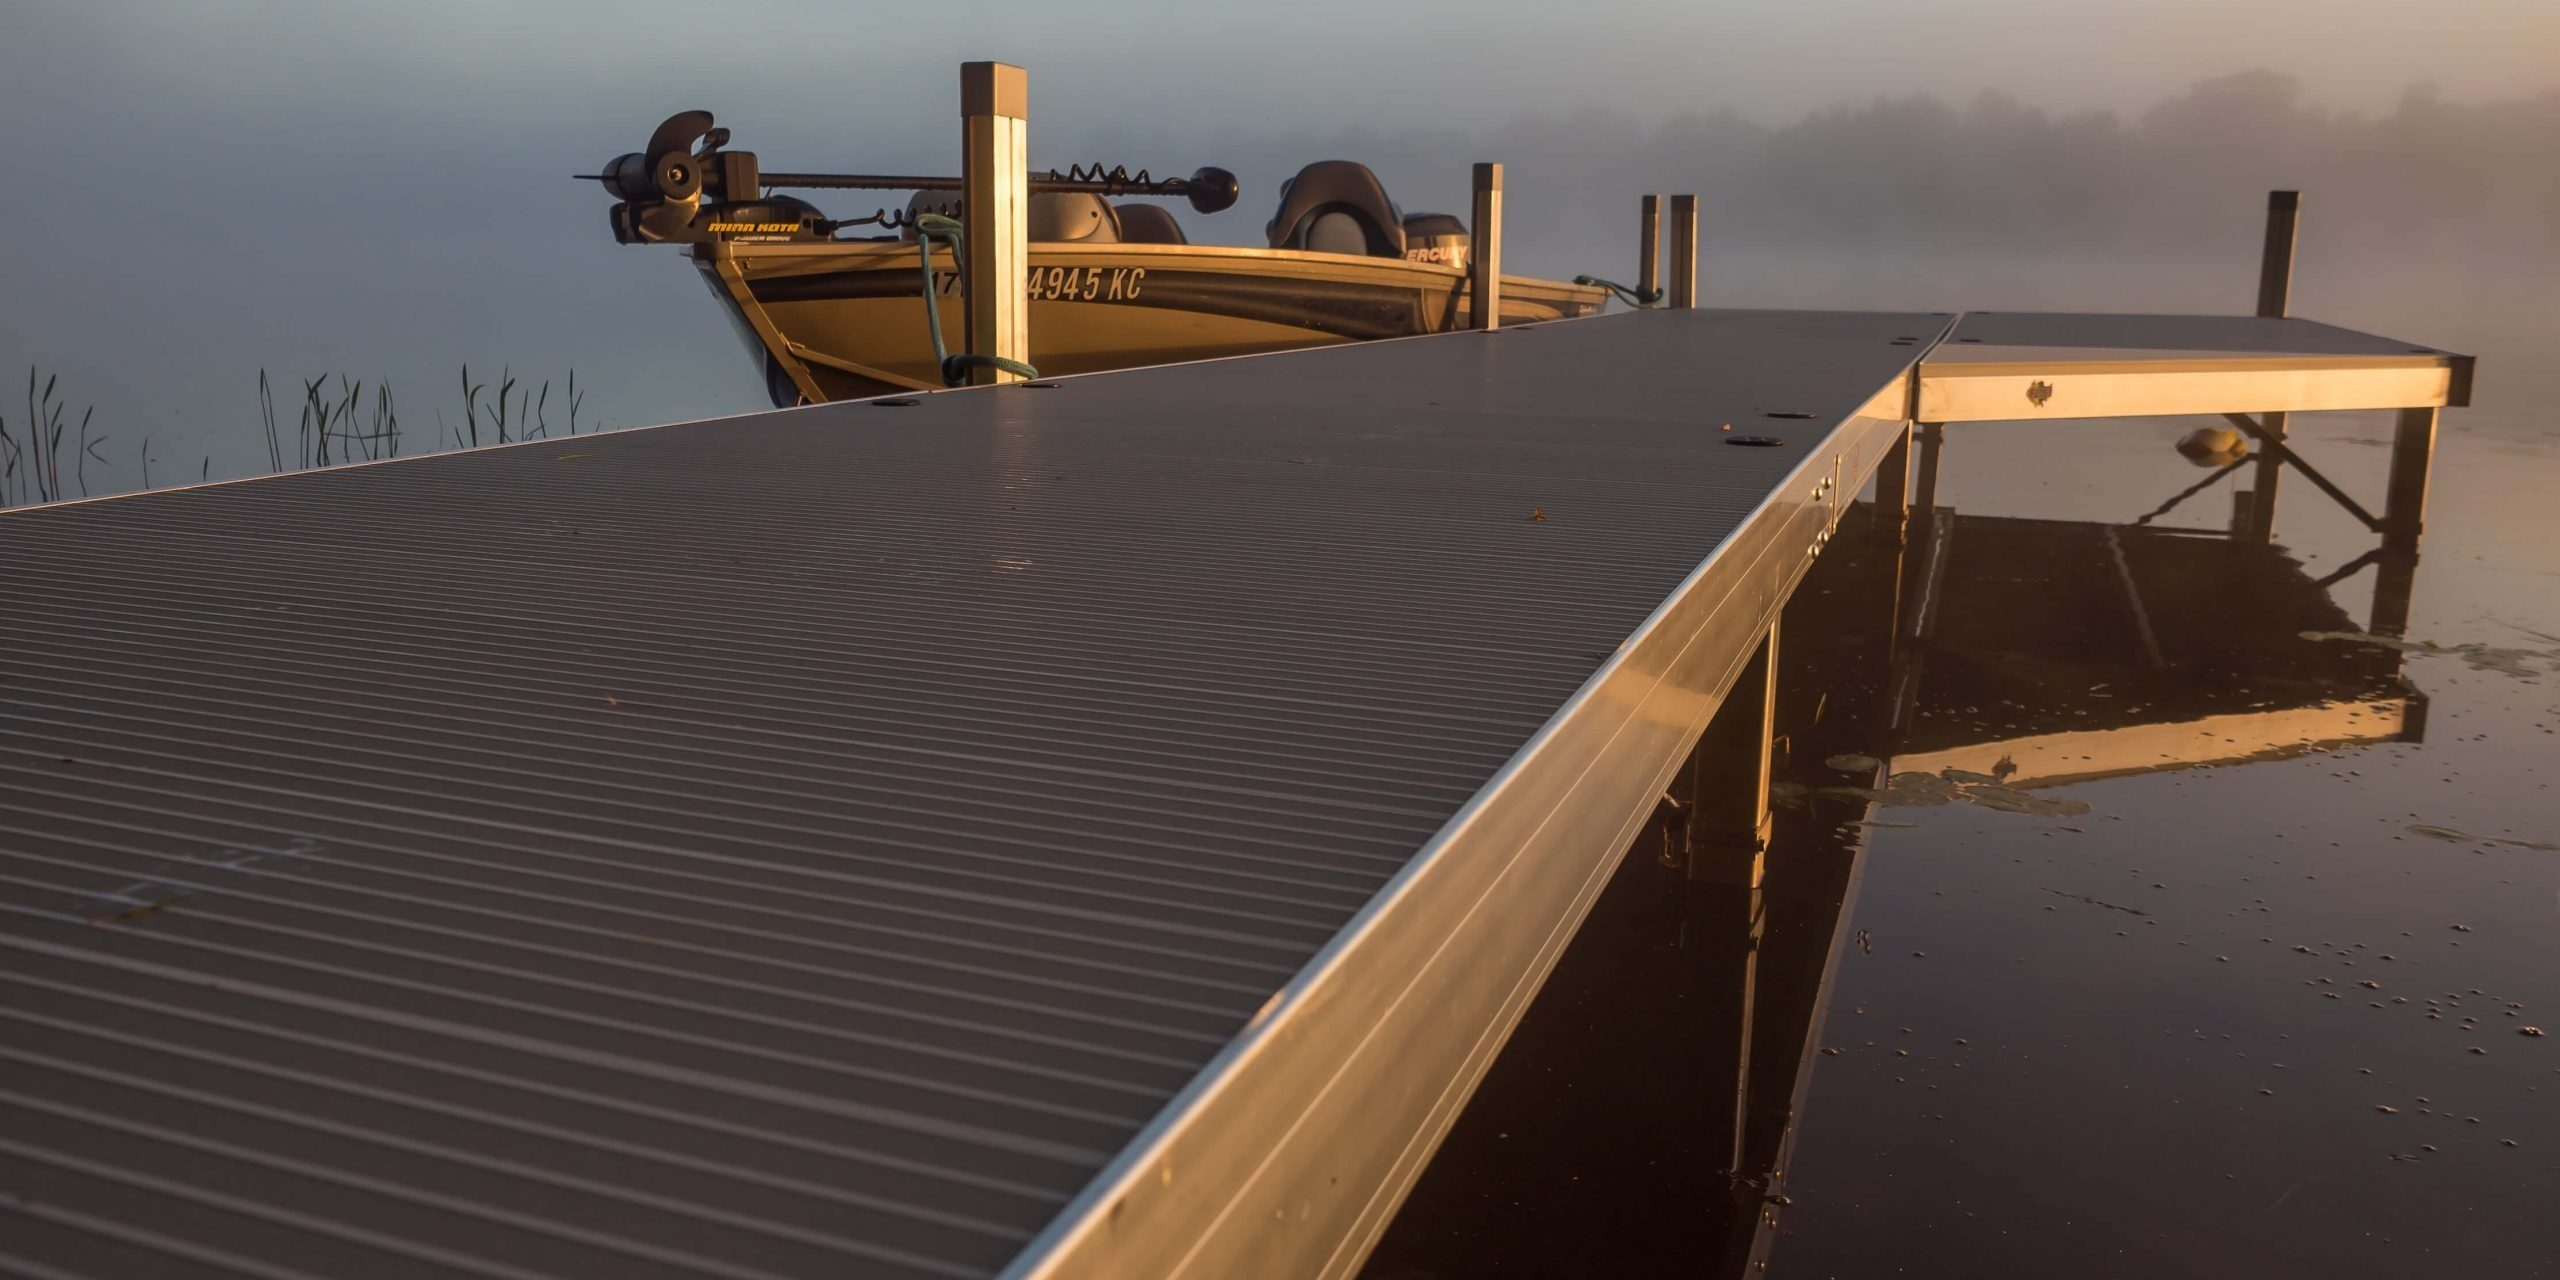 Looking for a new, easy-to-install dock before spring? We carry Floe Docks - and yeah -they're as awesome as this picture looks.